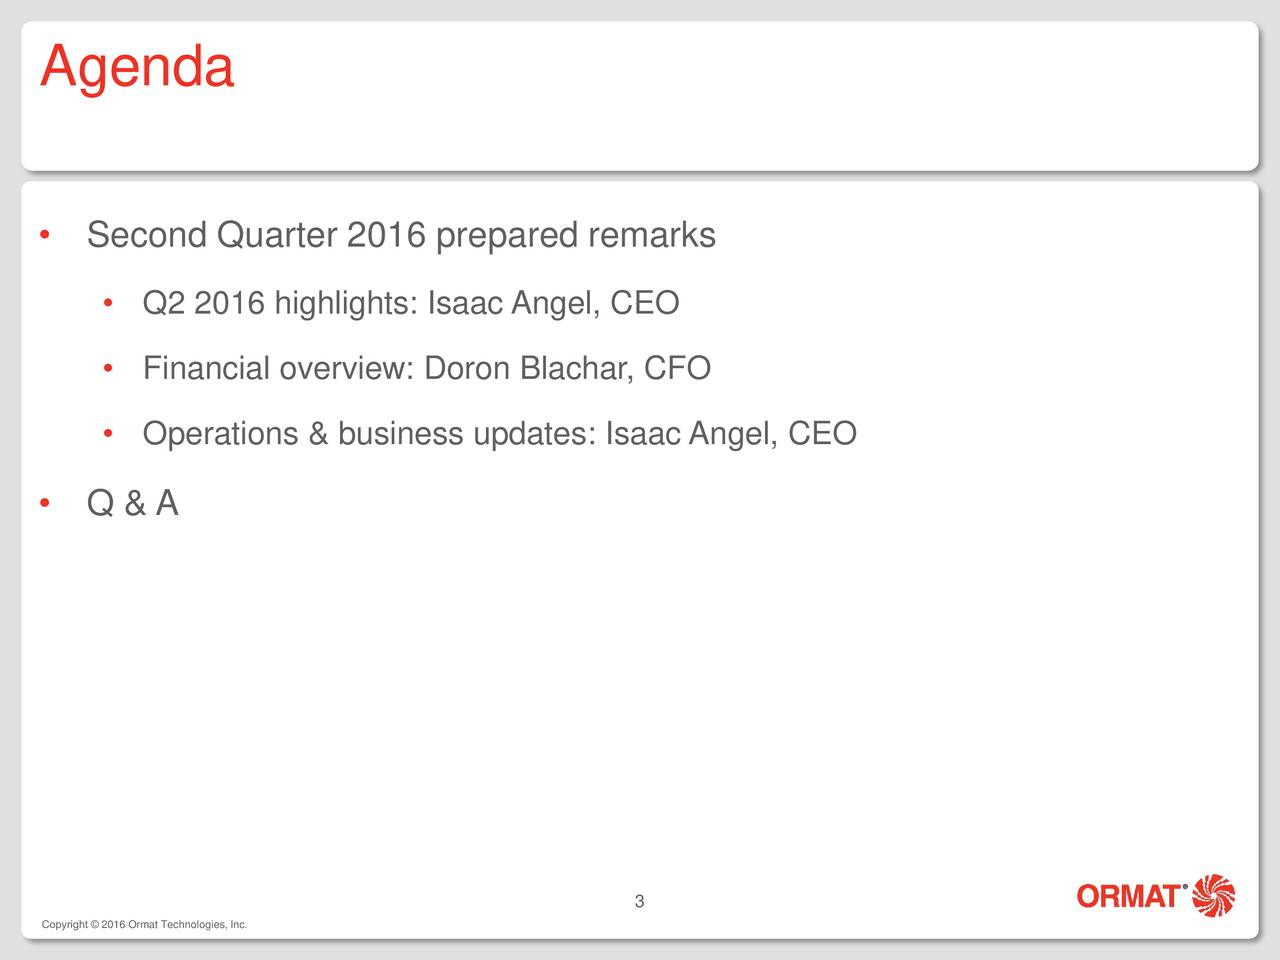 Second Quarter 2016 prepared remarks Q2 2016 highlights: Isaac Angel, CEO Financial overview: Doron Blachar, CFO Operations & business updates: Isaac Angel, CEO Q & A 3 Copyright  2016 Ormat Technologies, Inc.